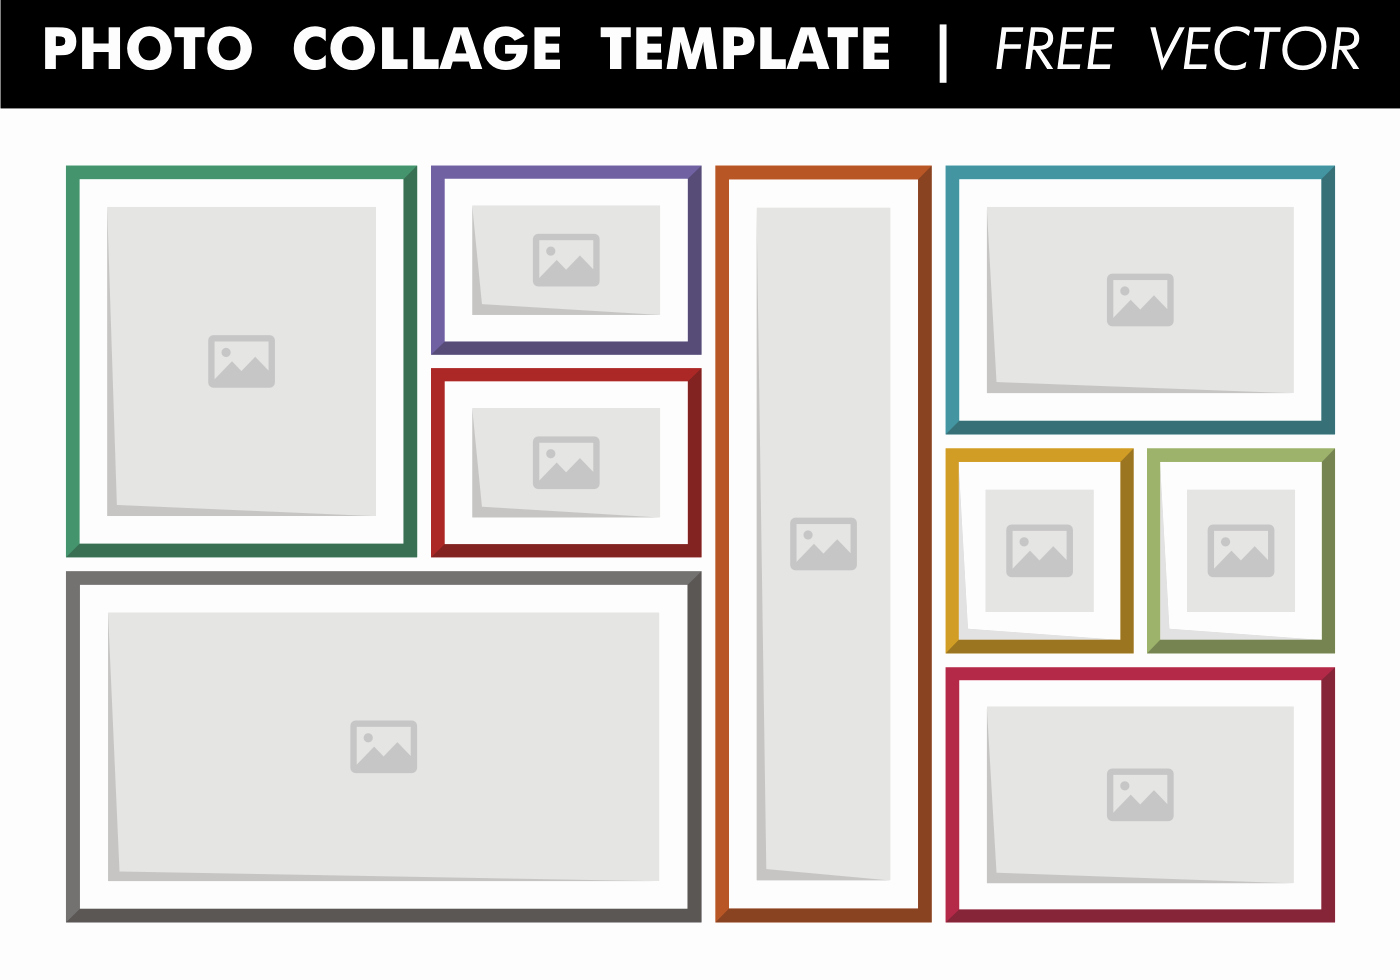 Microsoft Word Collage Template Download Unique Collage Template Free Vector Download Free Vector